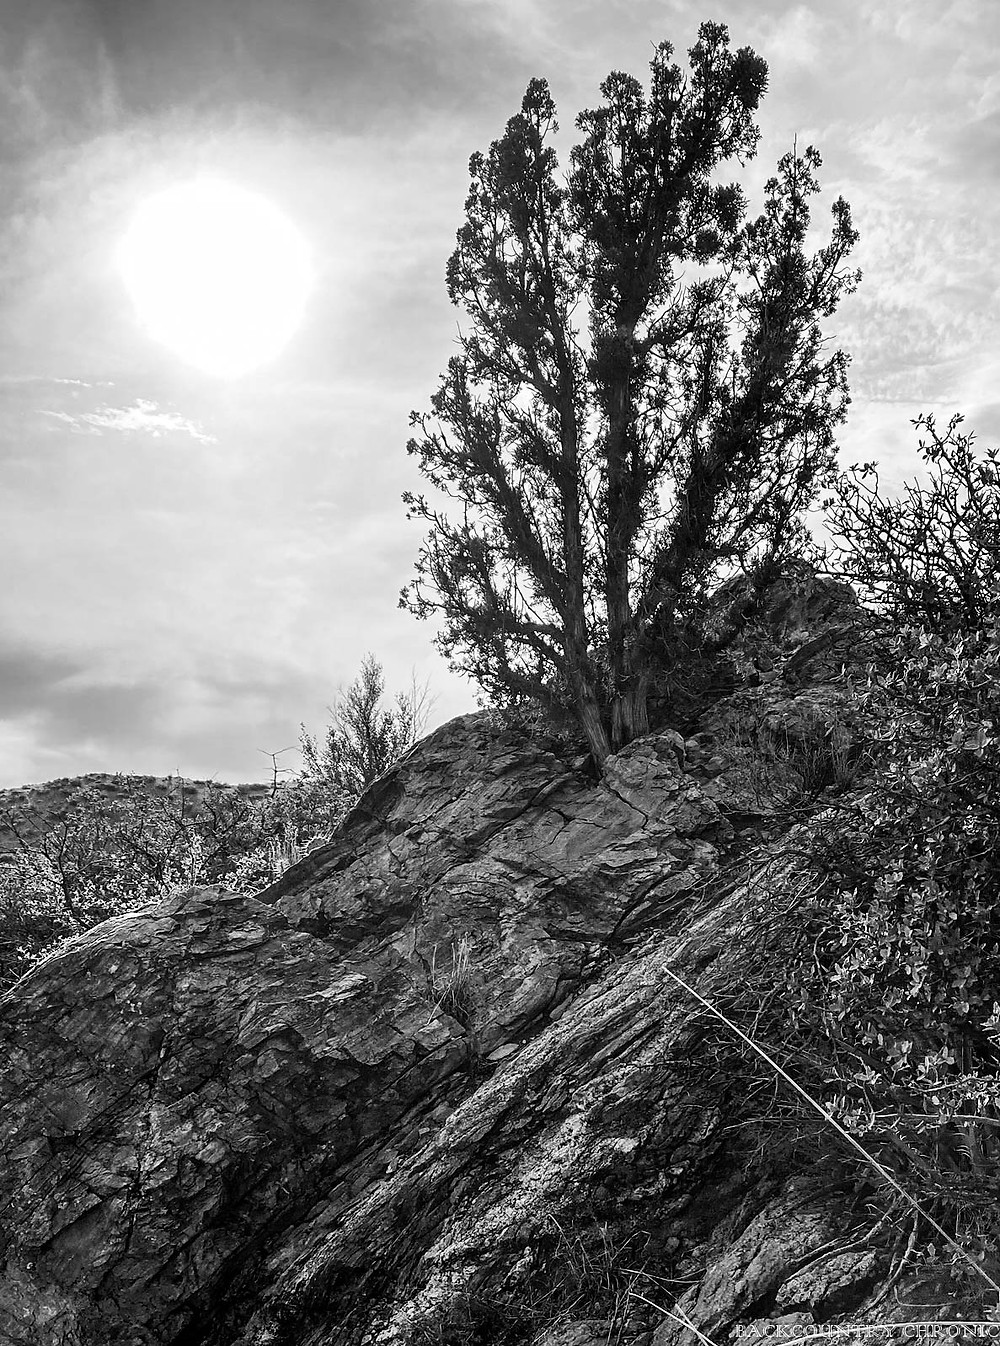 Juniper tree on hiking trail in the Albuquerque foothills